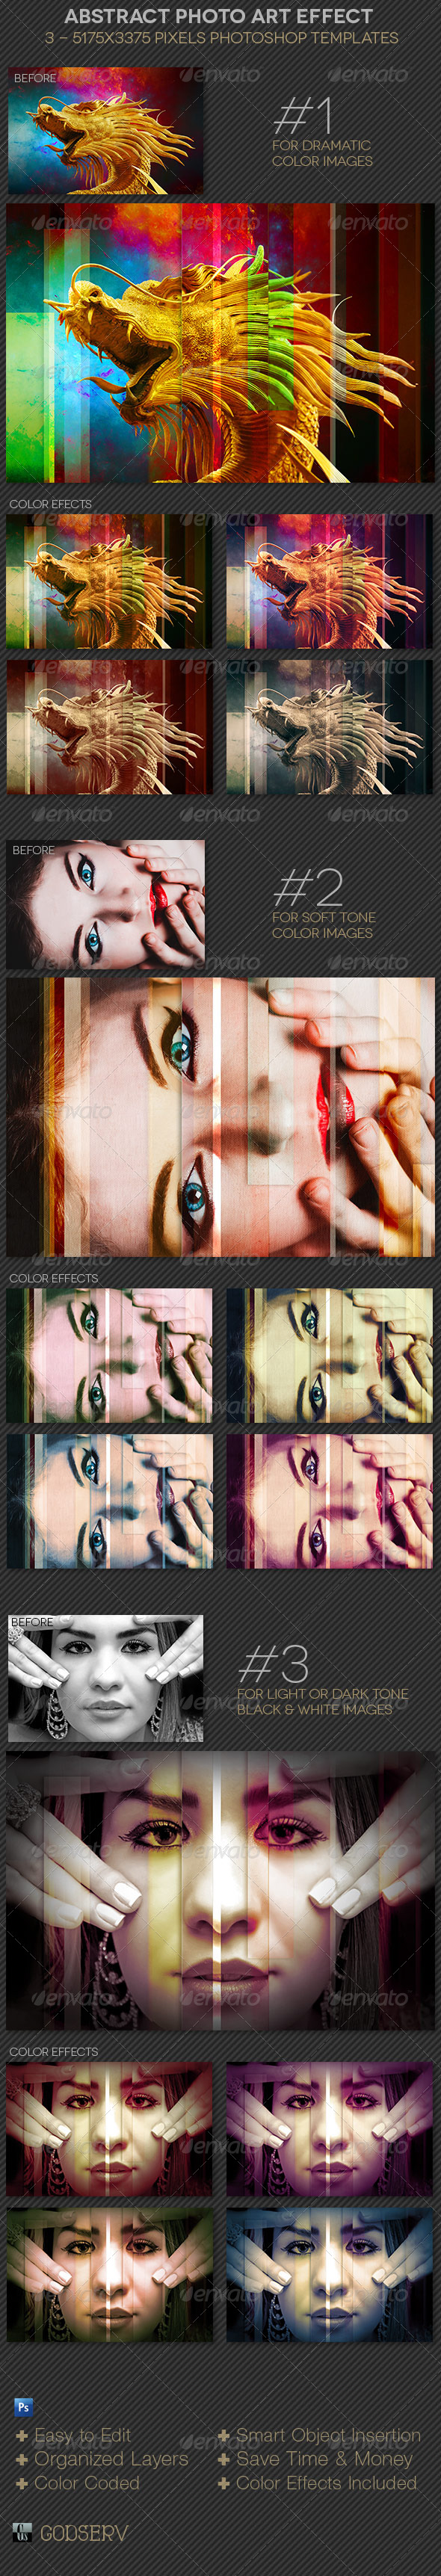 Abstract Photo Effect Template - Artistic Photo Templates